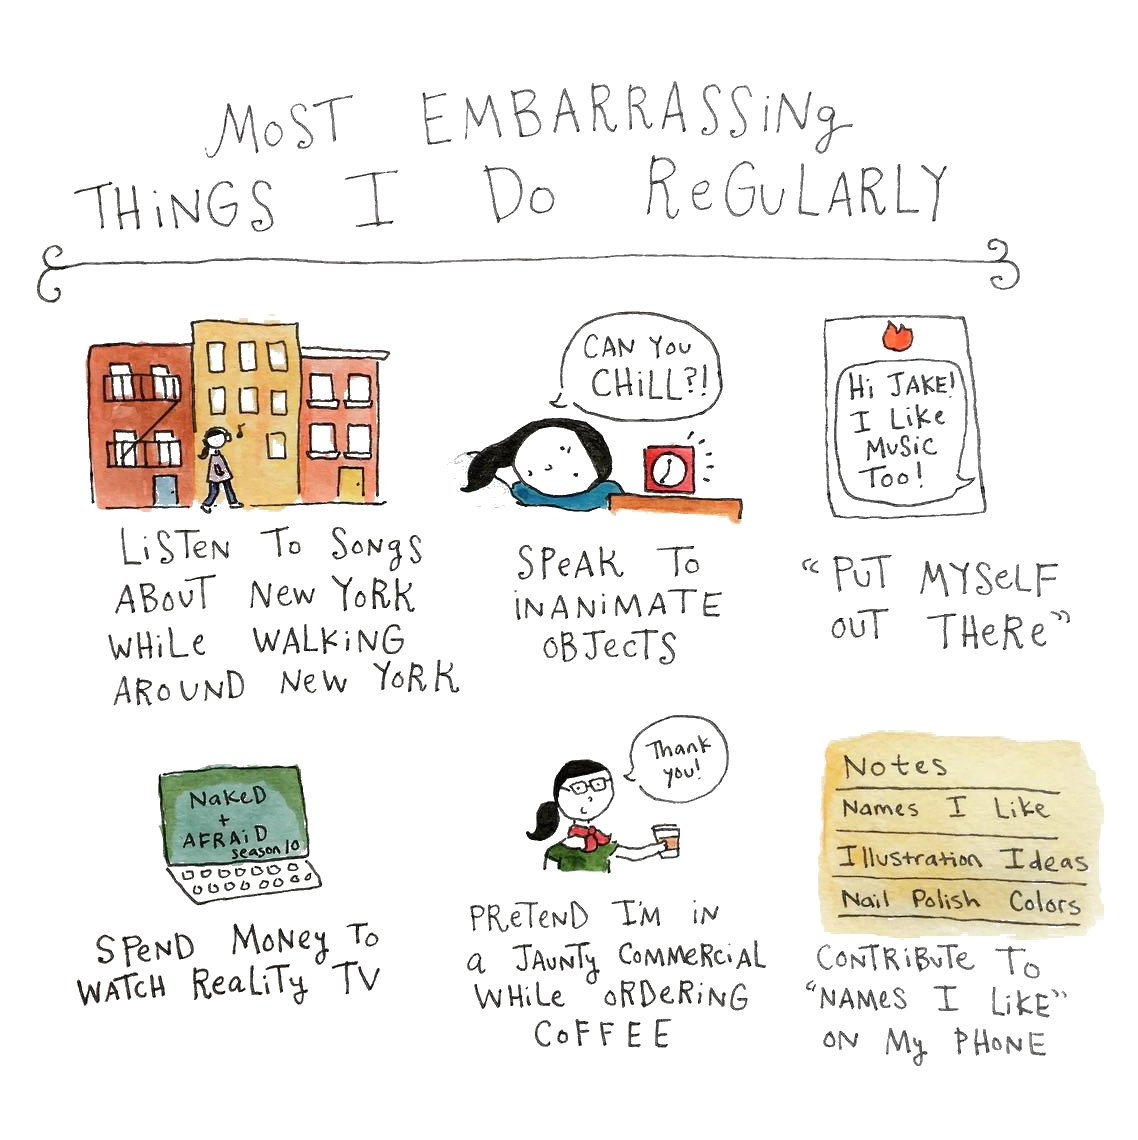 Embarrassing Routines